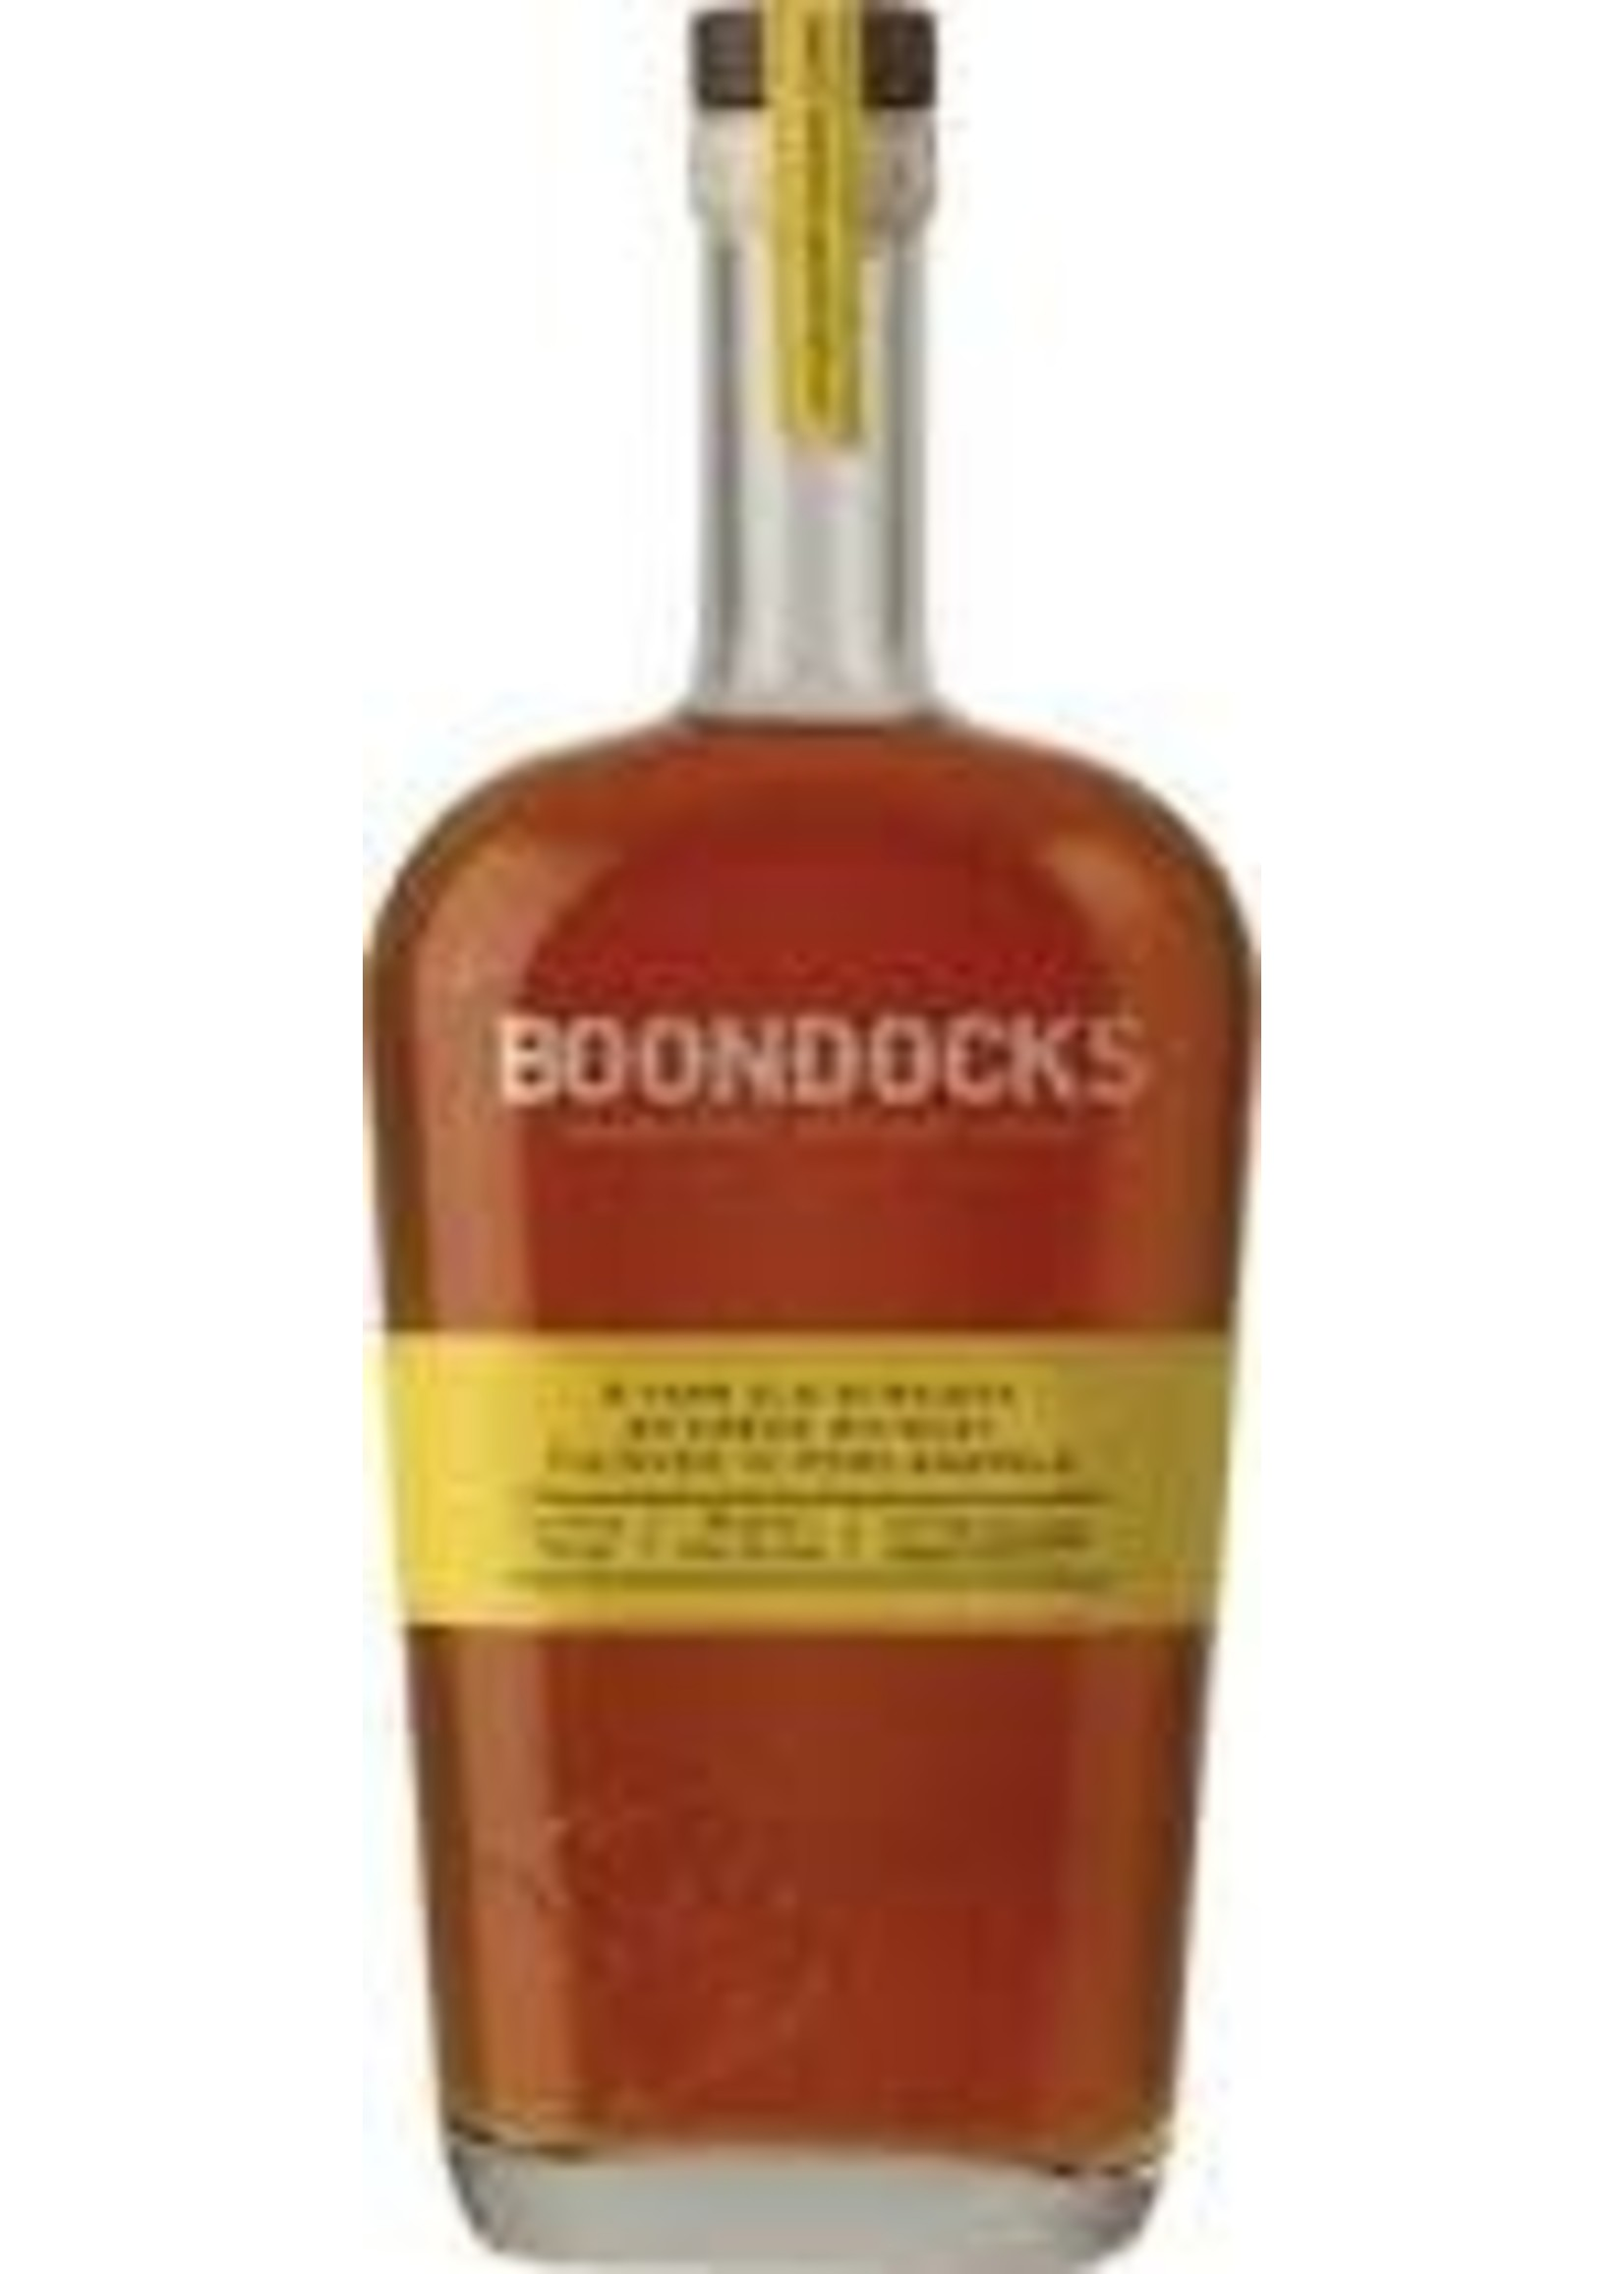 Boondock's Port Finished 8 Year Old Straight Bourbon Whiskey 750ml